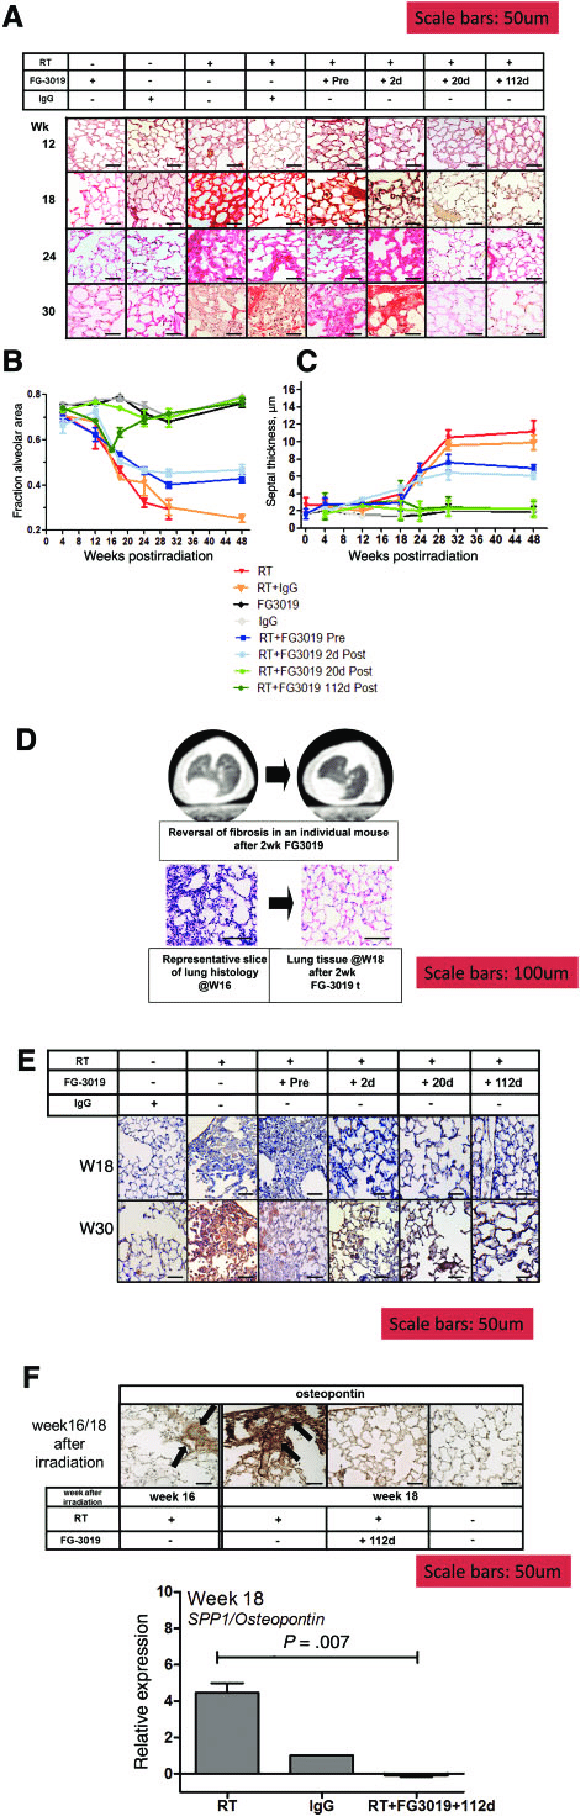 hight resolution of pulmonary tissue remodeling after irradiation and connective tissue growth factor blockade a sirius red